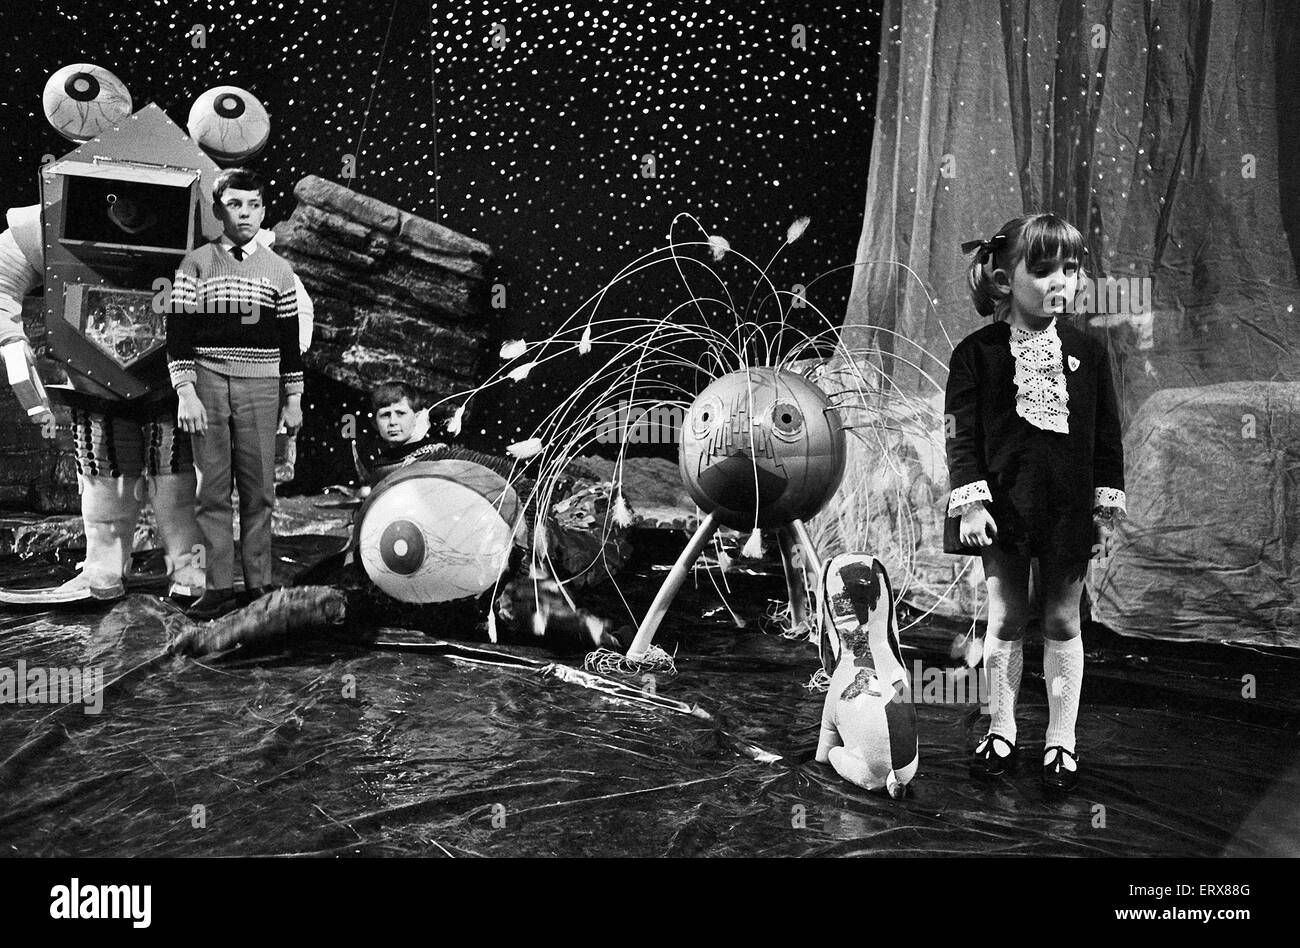 Dr Who Monster Competition organised by the BBC's Blue Peter children's programme at the BBC studio's. - Stock Image